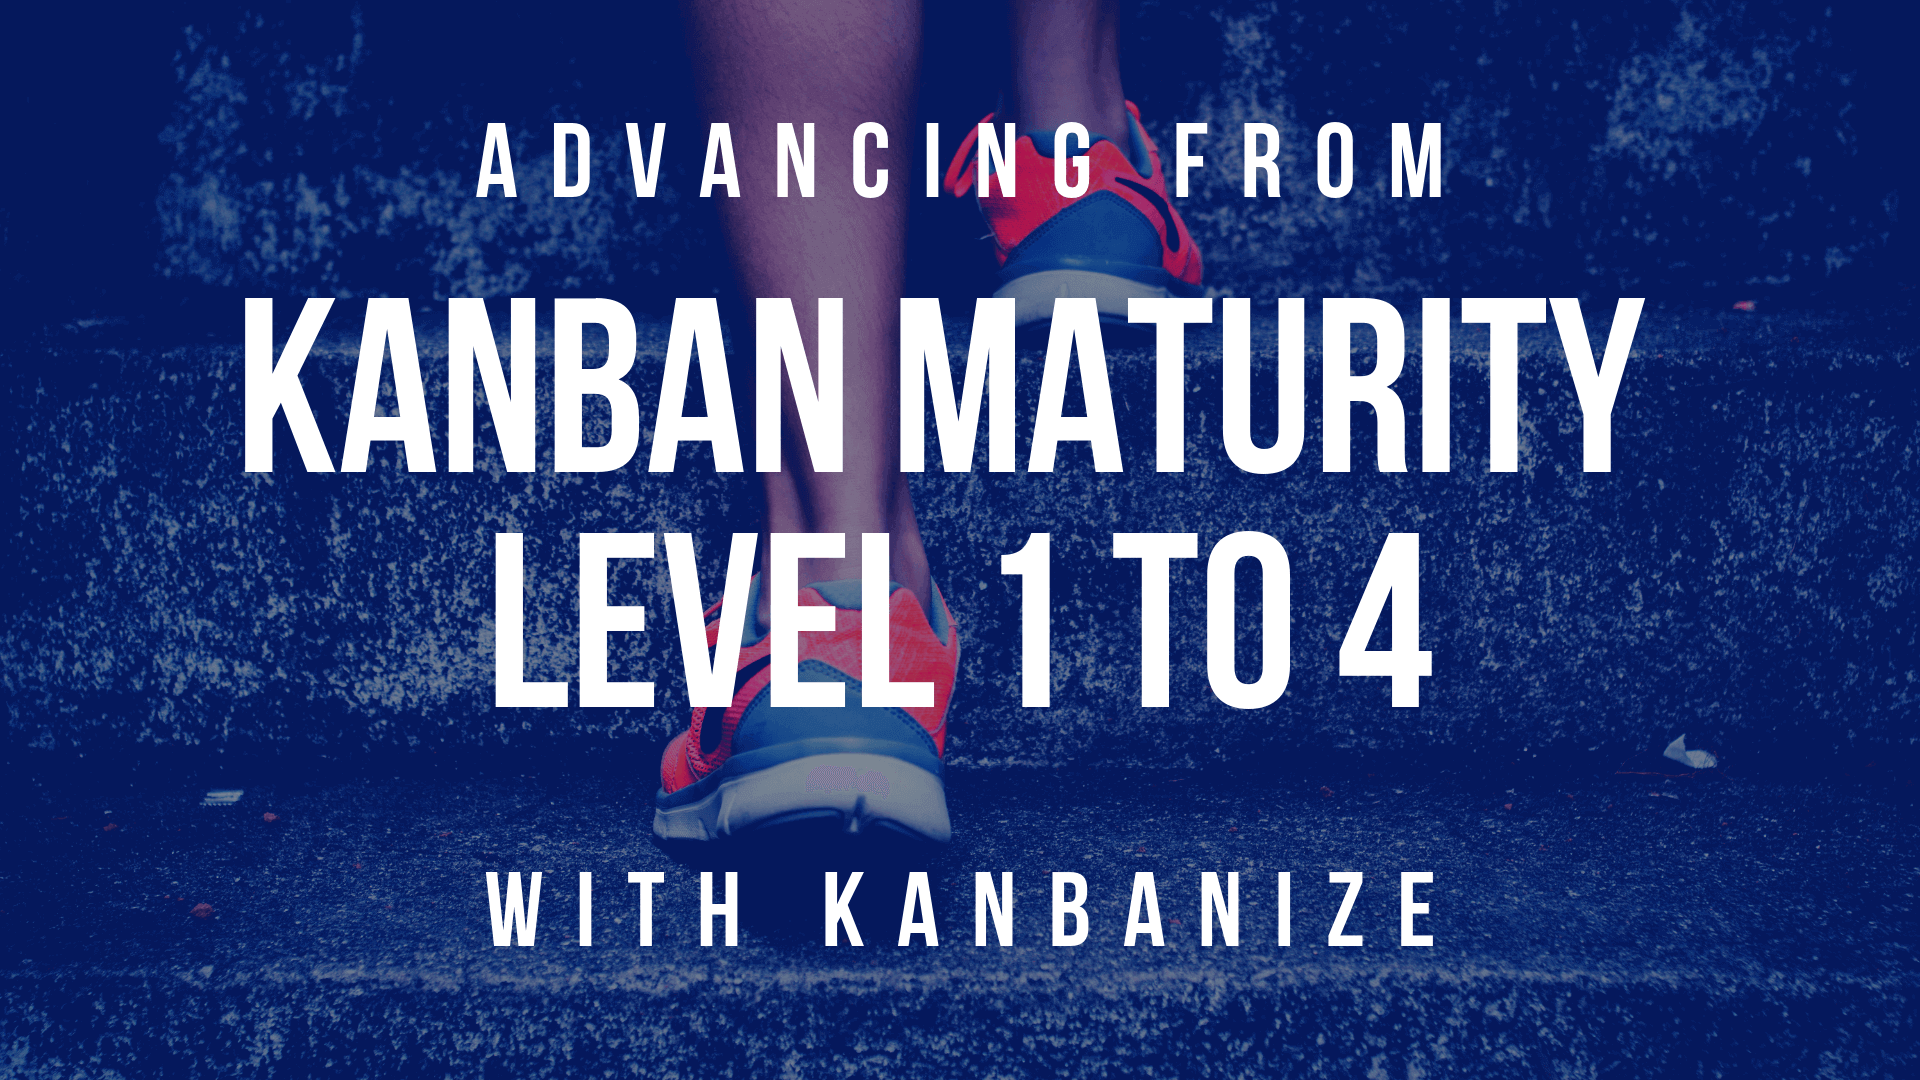 Advancing from Kanban Maturity level 1 to 4 with Kanbanize